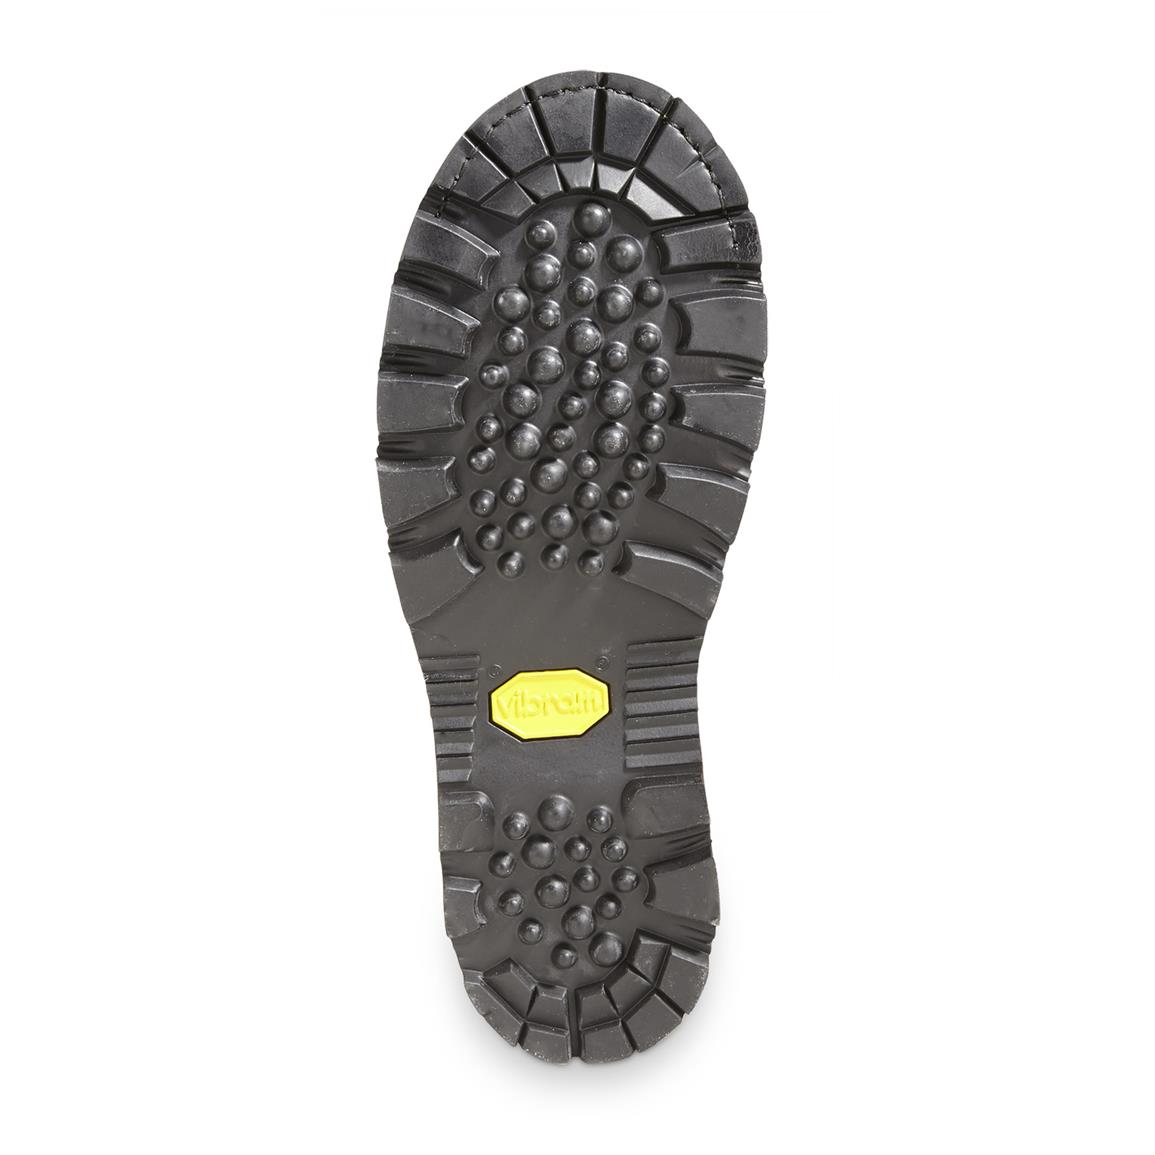 Vibram® Little Horn outsole for top traction